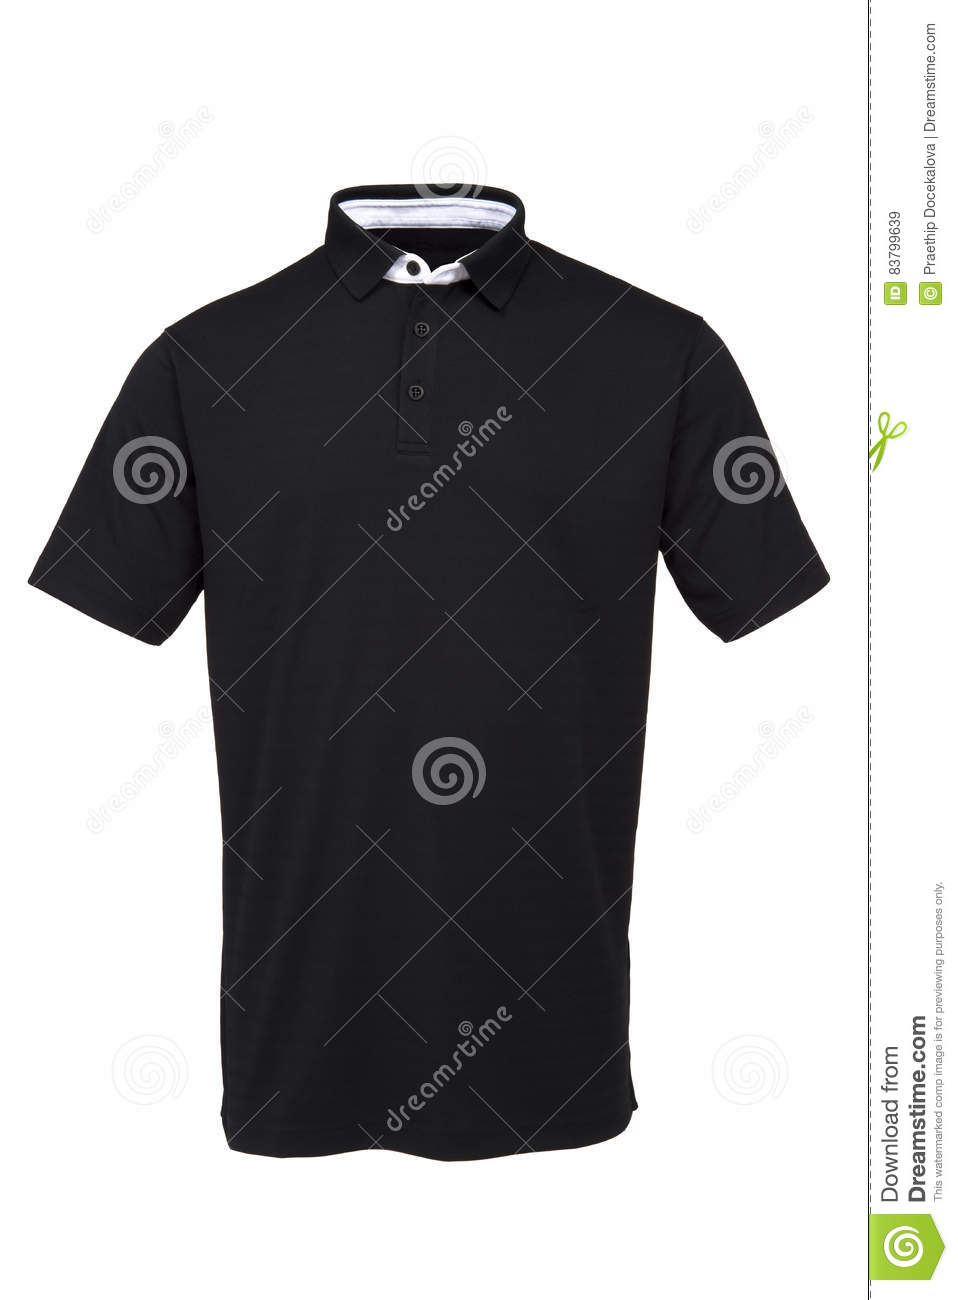 Black t shirt with white collar - Black Golf Tee Shirt With White Collar For Man